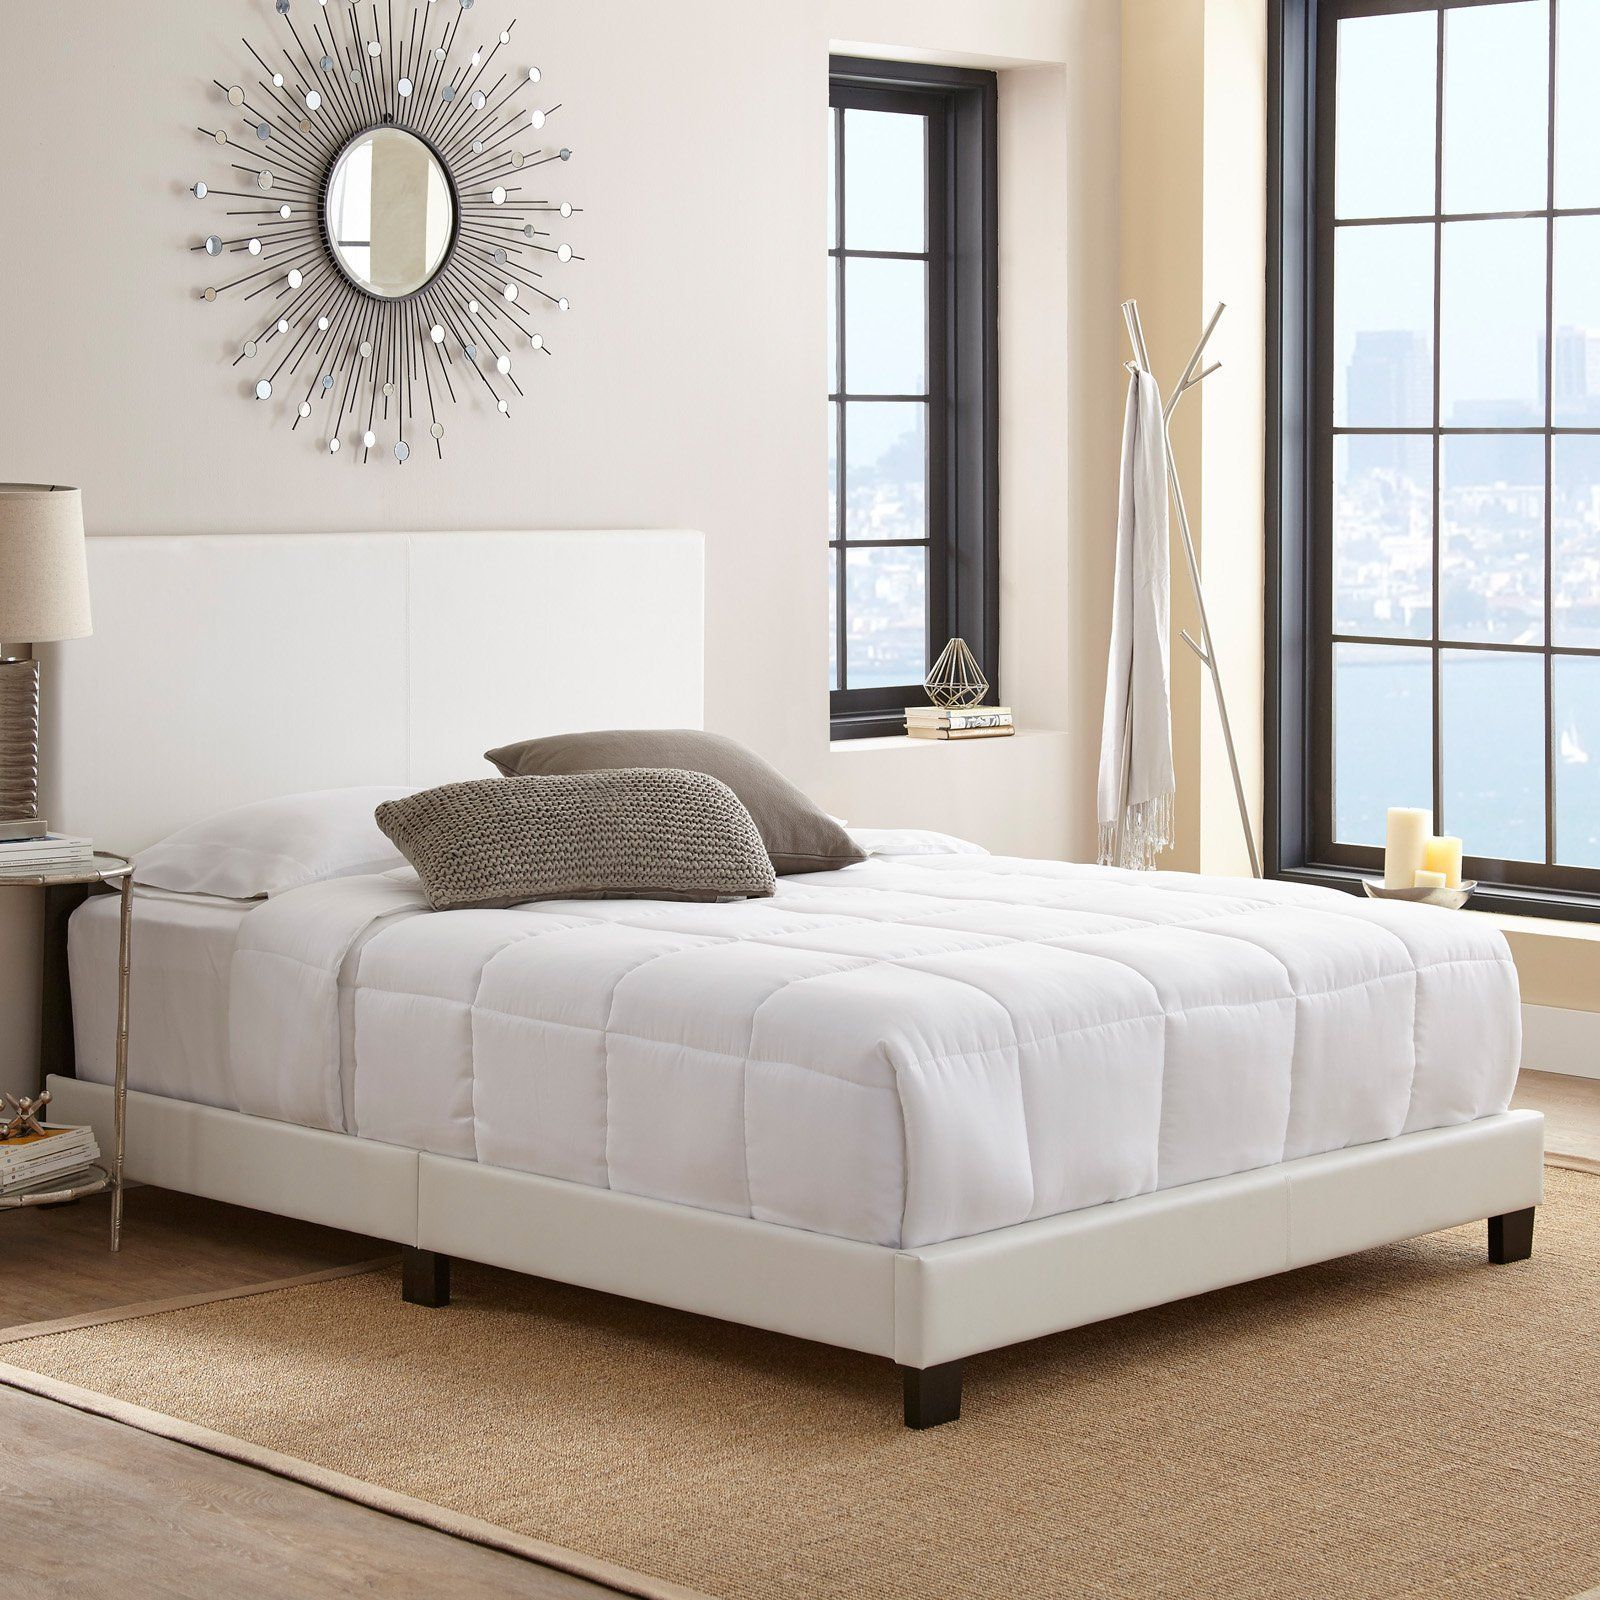 Pure Posture Greyson Panel Bed White, Size Full Leather